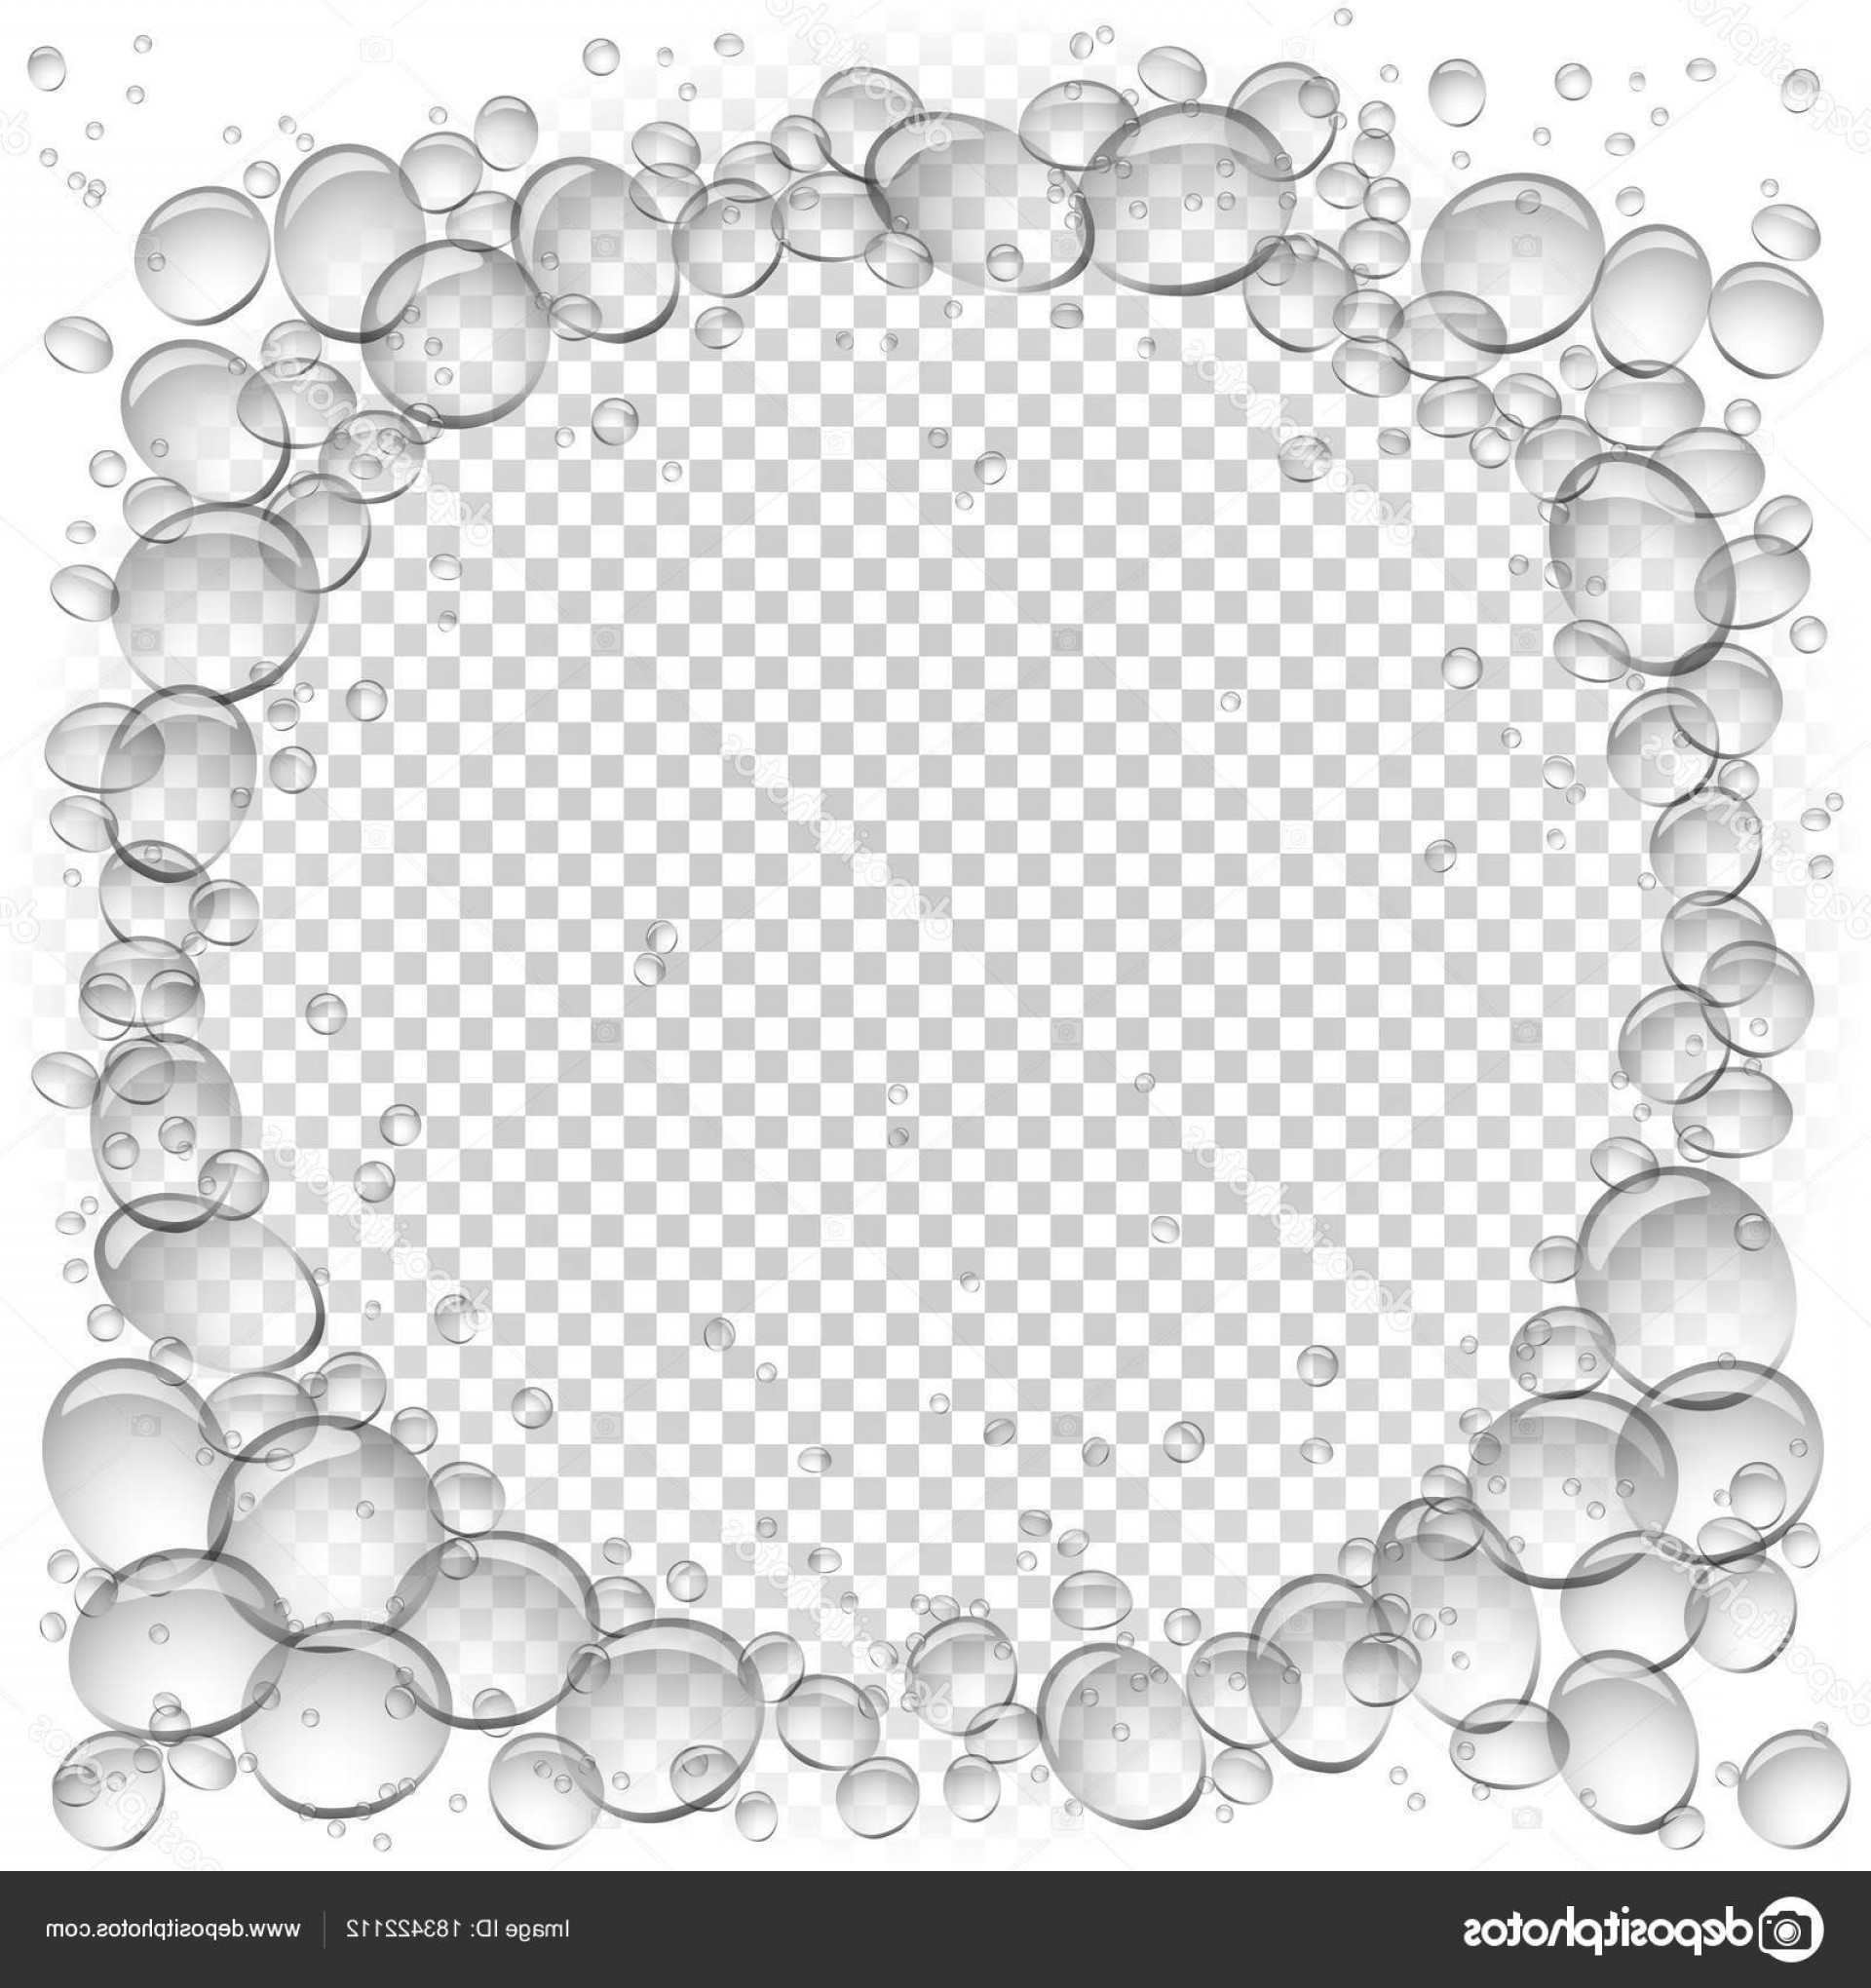 Vector Bubbles Circle: Stock Illustration Water Bubbles Circle Frame Transparent